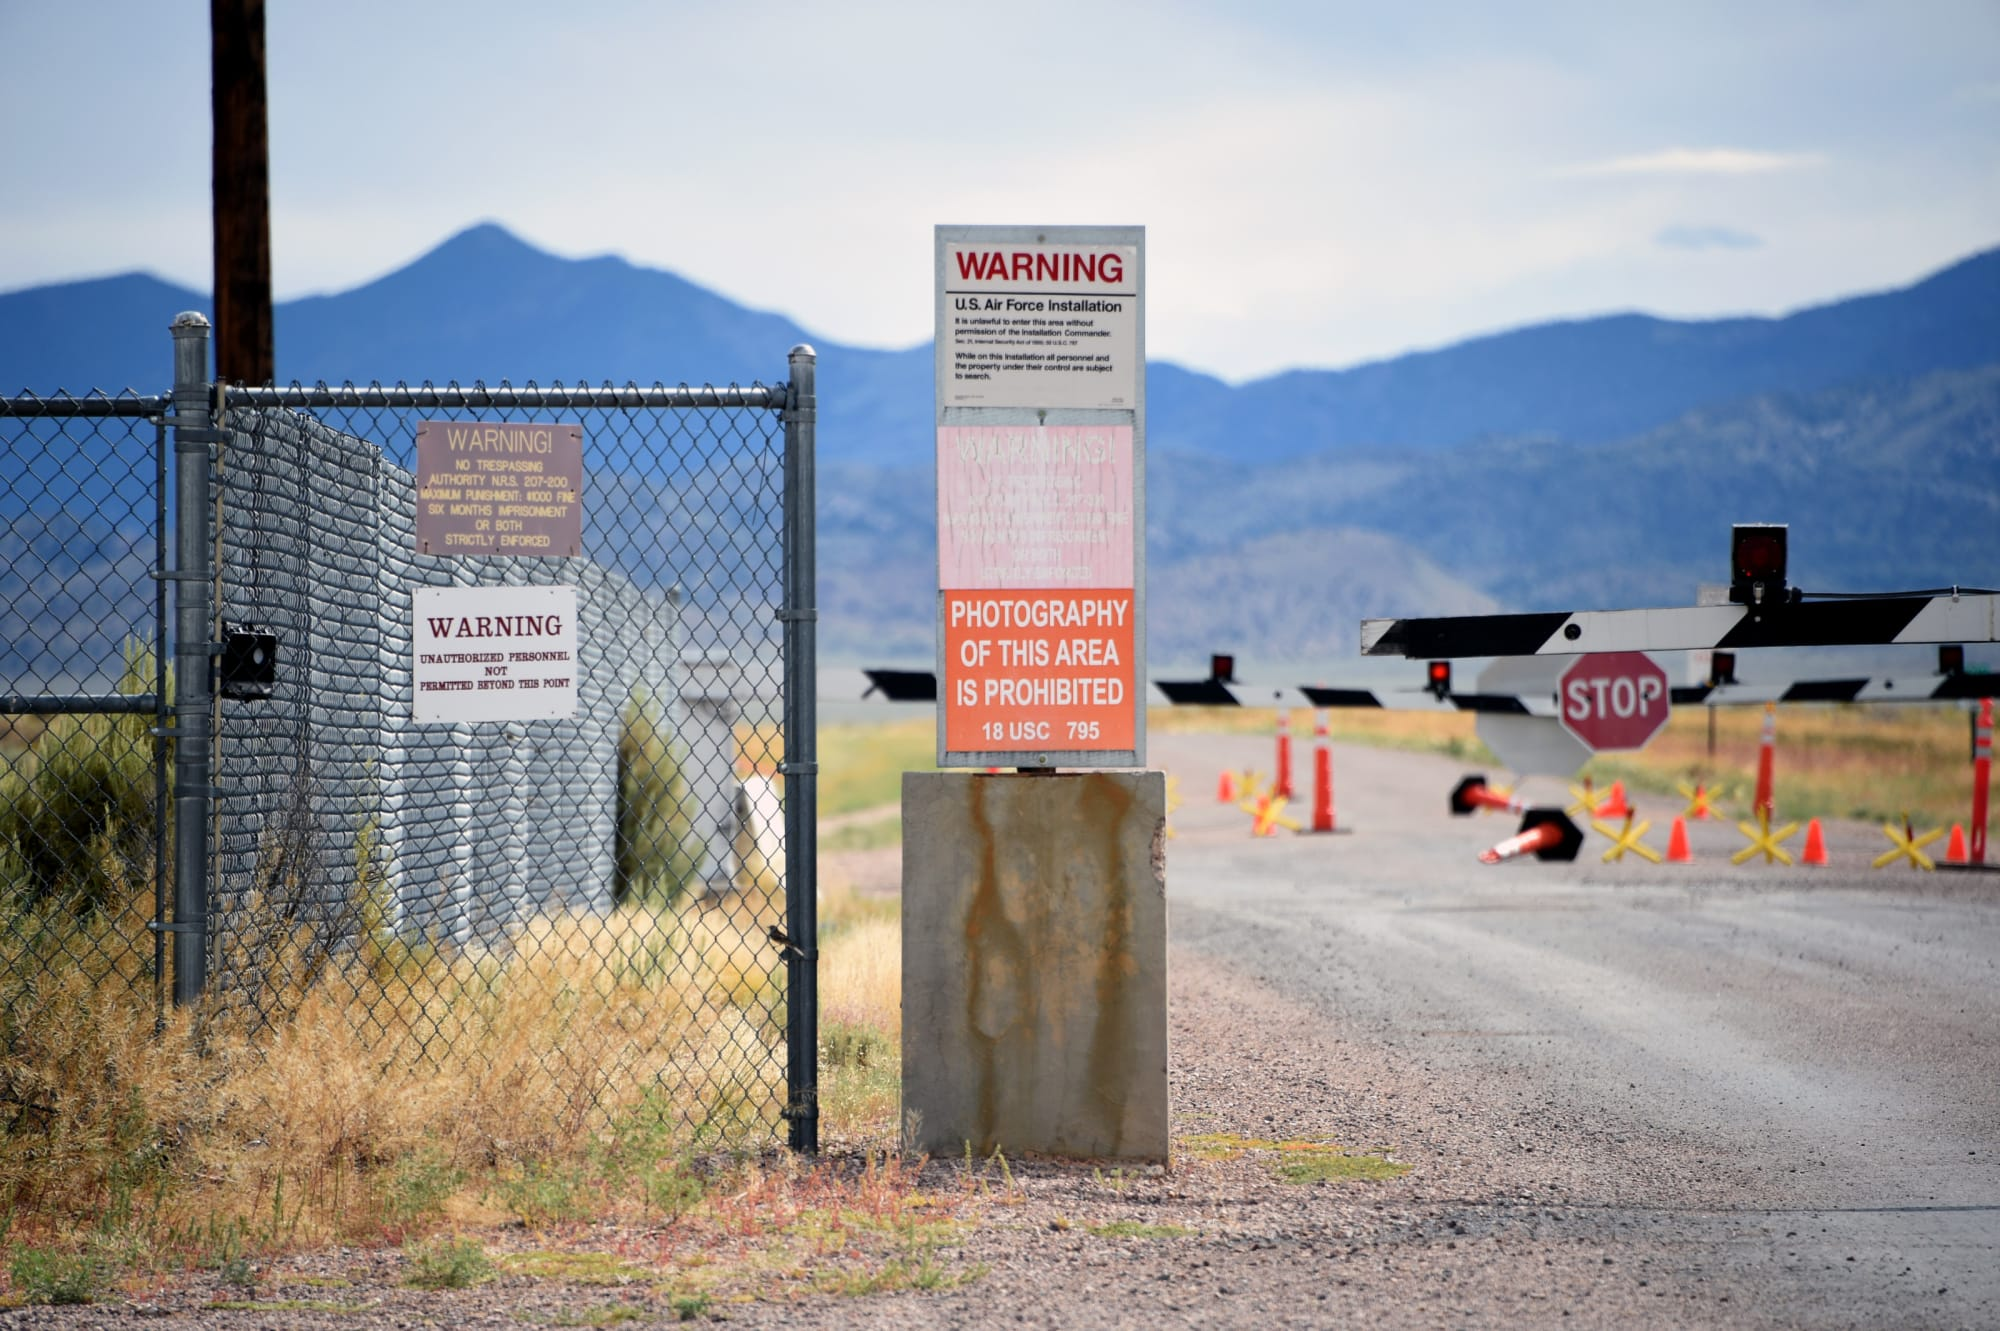 UFO: Is there an alien craft at Area 51 on Google Maps?